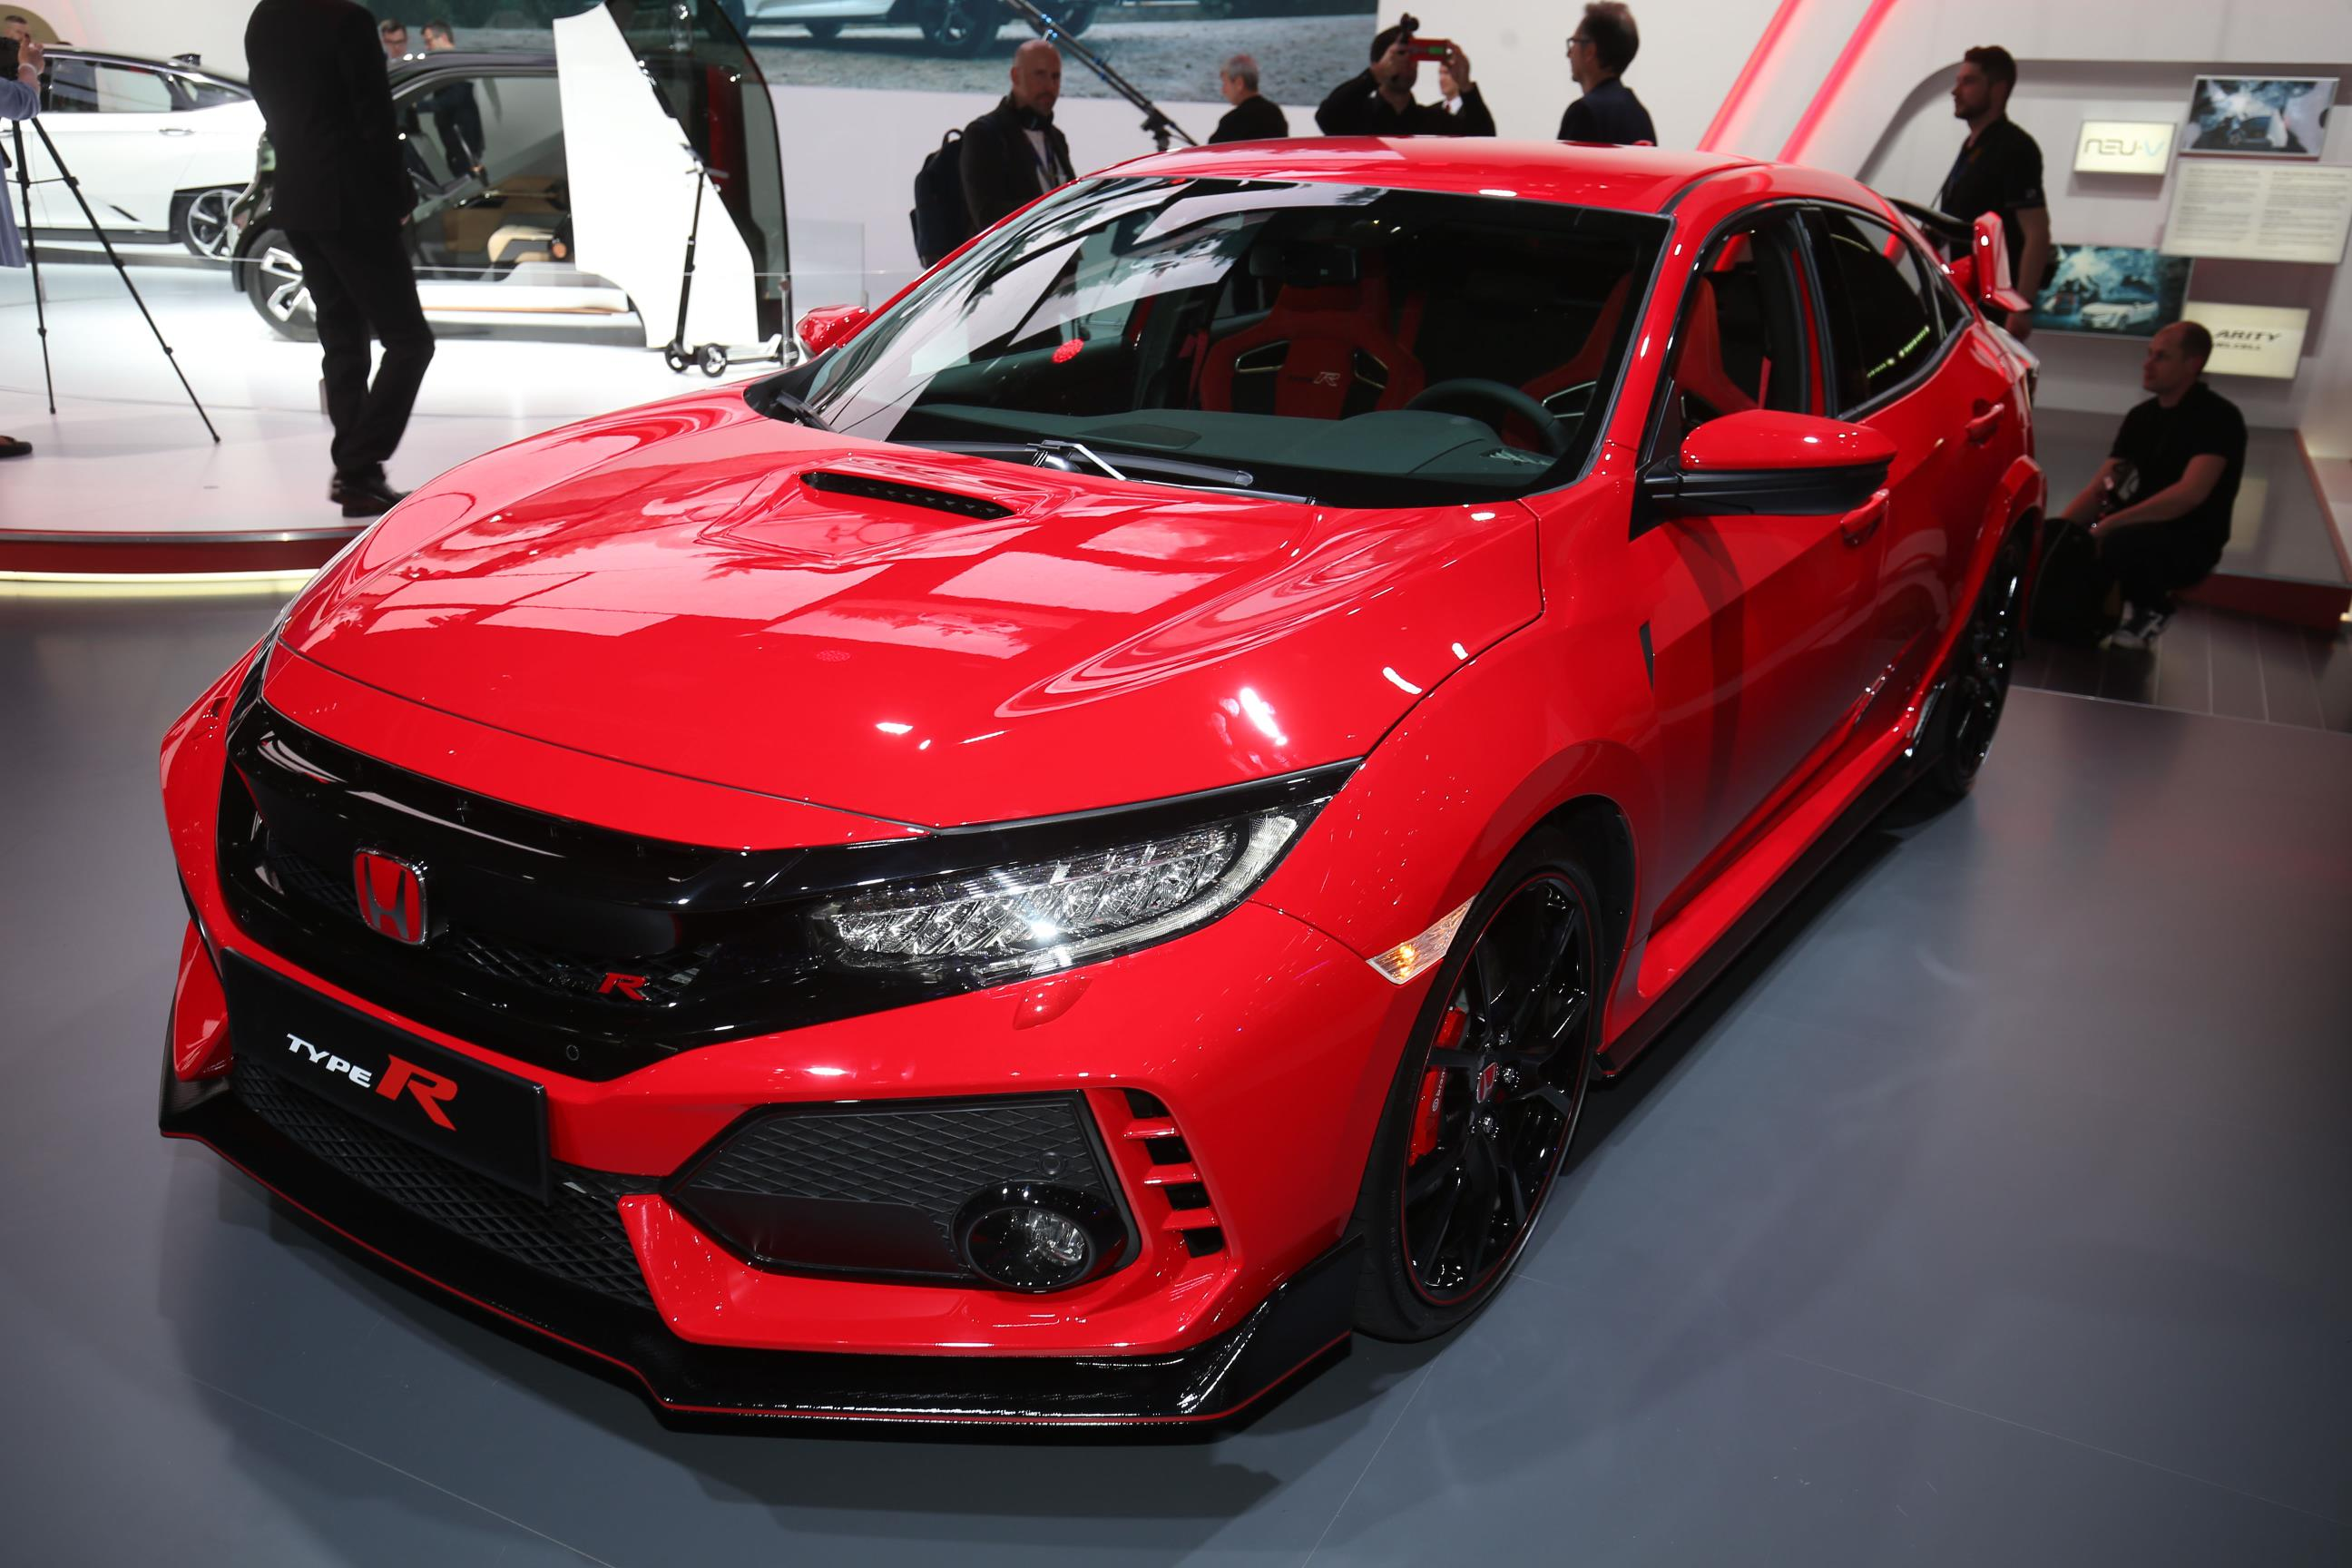 Honda To Debut U.S.-Spec FK8 Civic Type R At 2017 New York ...